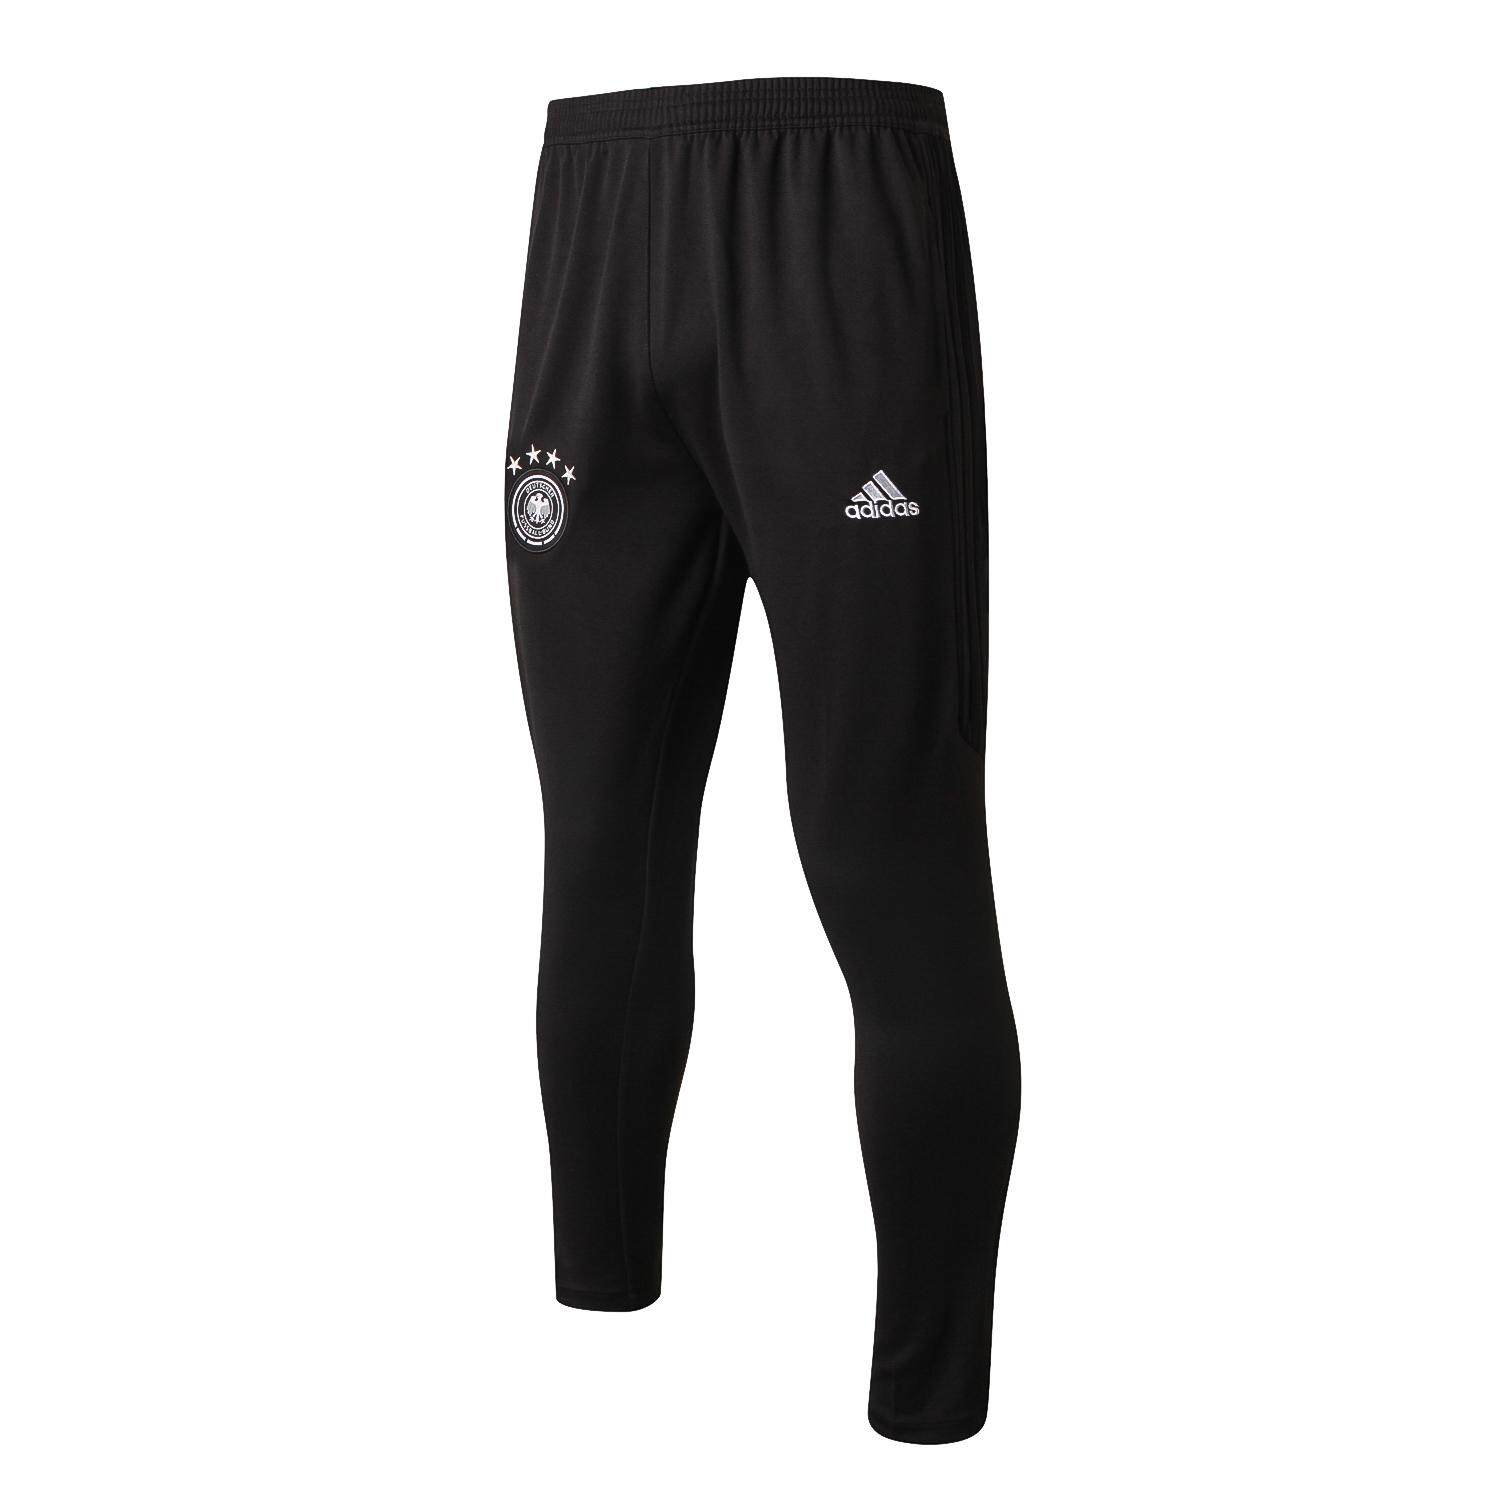 ขาย Top Quality 2018 Germany Training Pants Trousers Football Pants ผู้ค้าส่ง